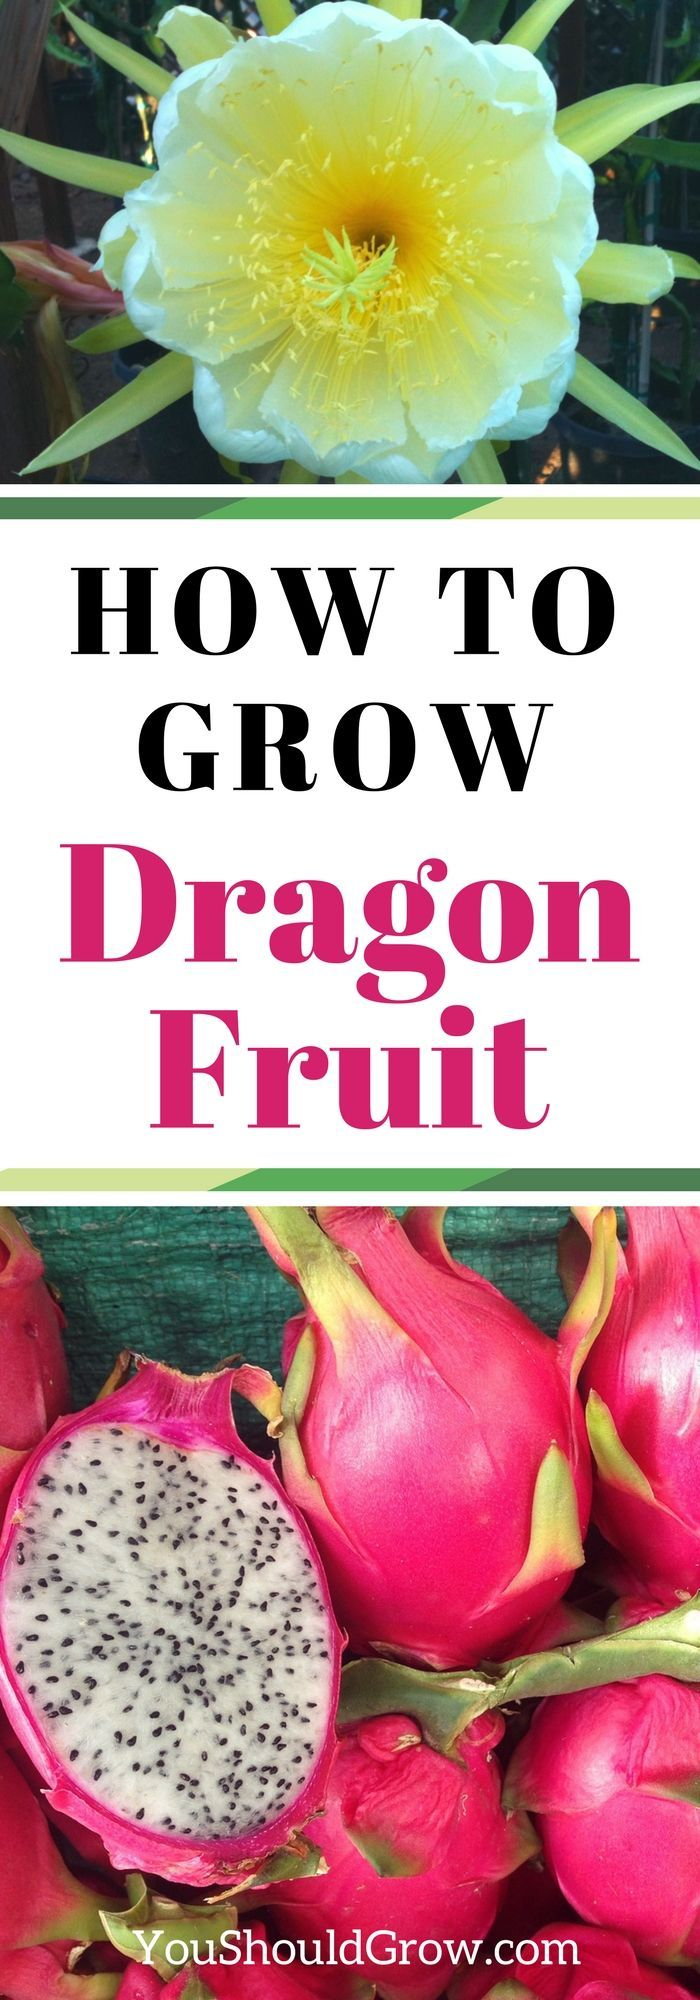 Ever wondered how to grow the exotic dragon fruit? The dragon fruit cactus is actually pretty easy to grow. Find out how to do it and get tips for success at youshouldgrow.com. via @whippoorwillgar